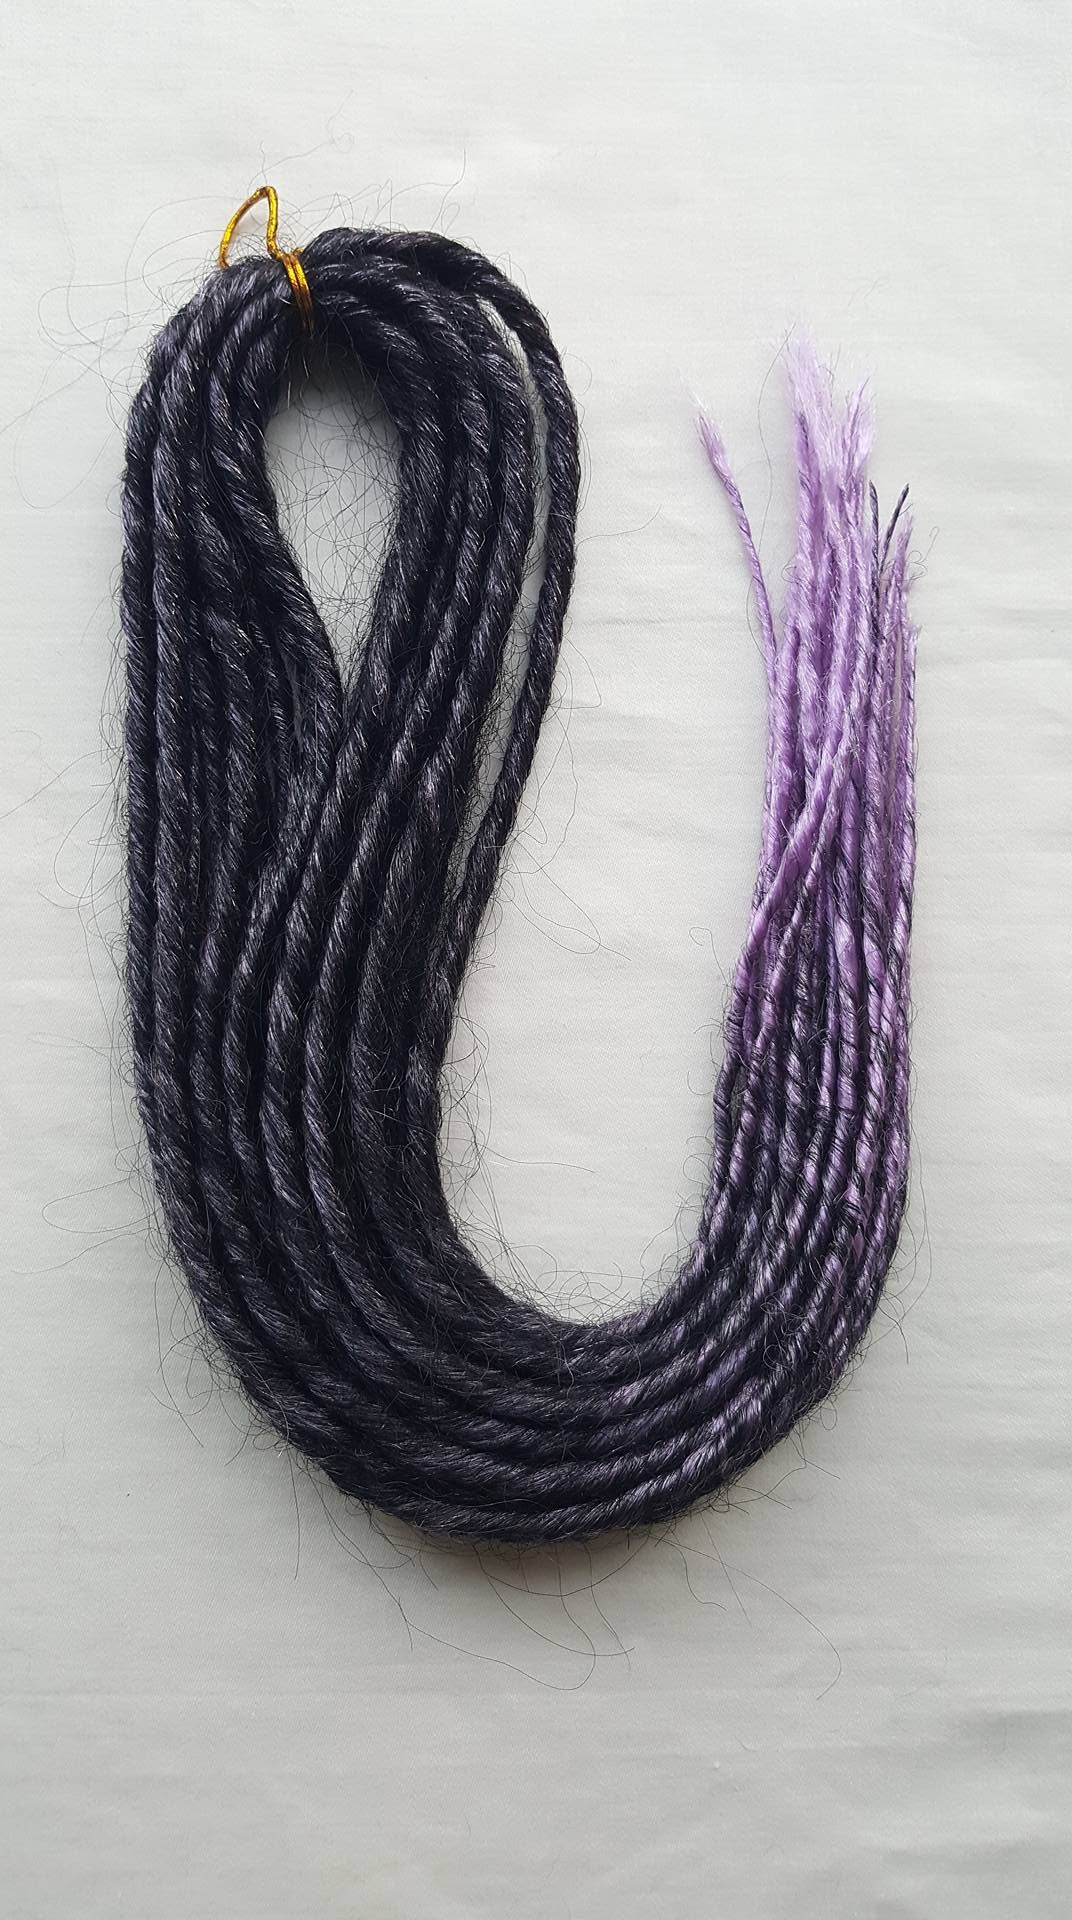 Elysee Star – Black-Purple Transitional Synthetic Dreadlocks